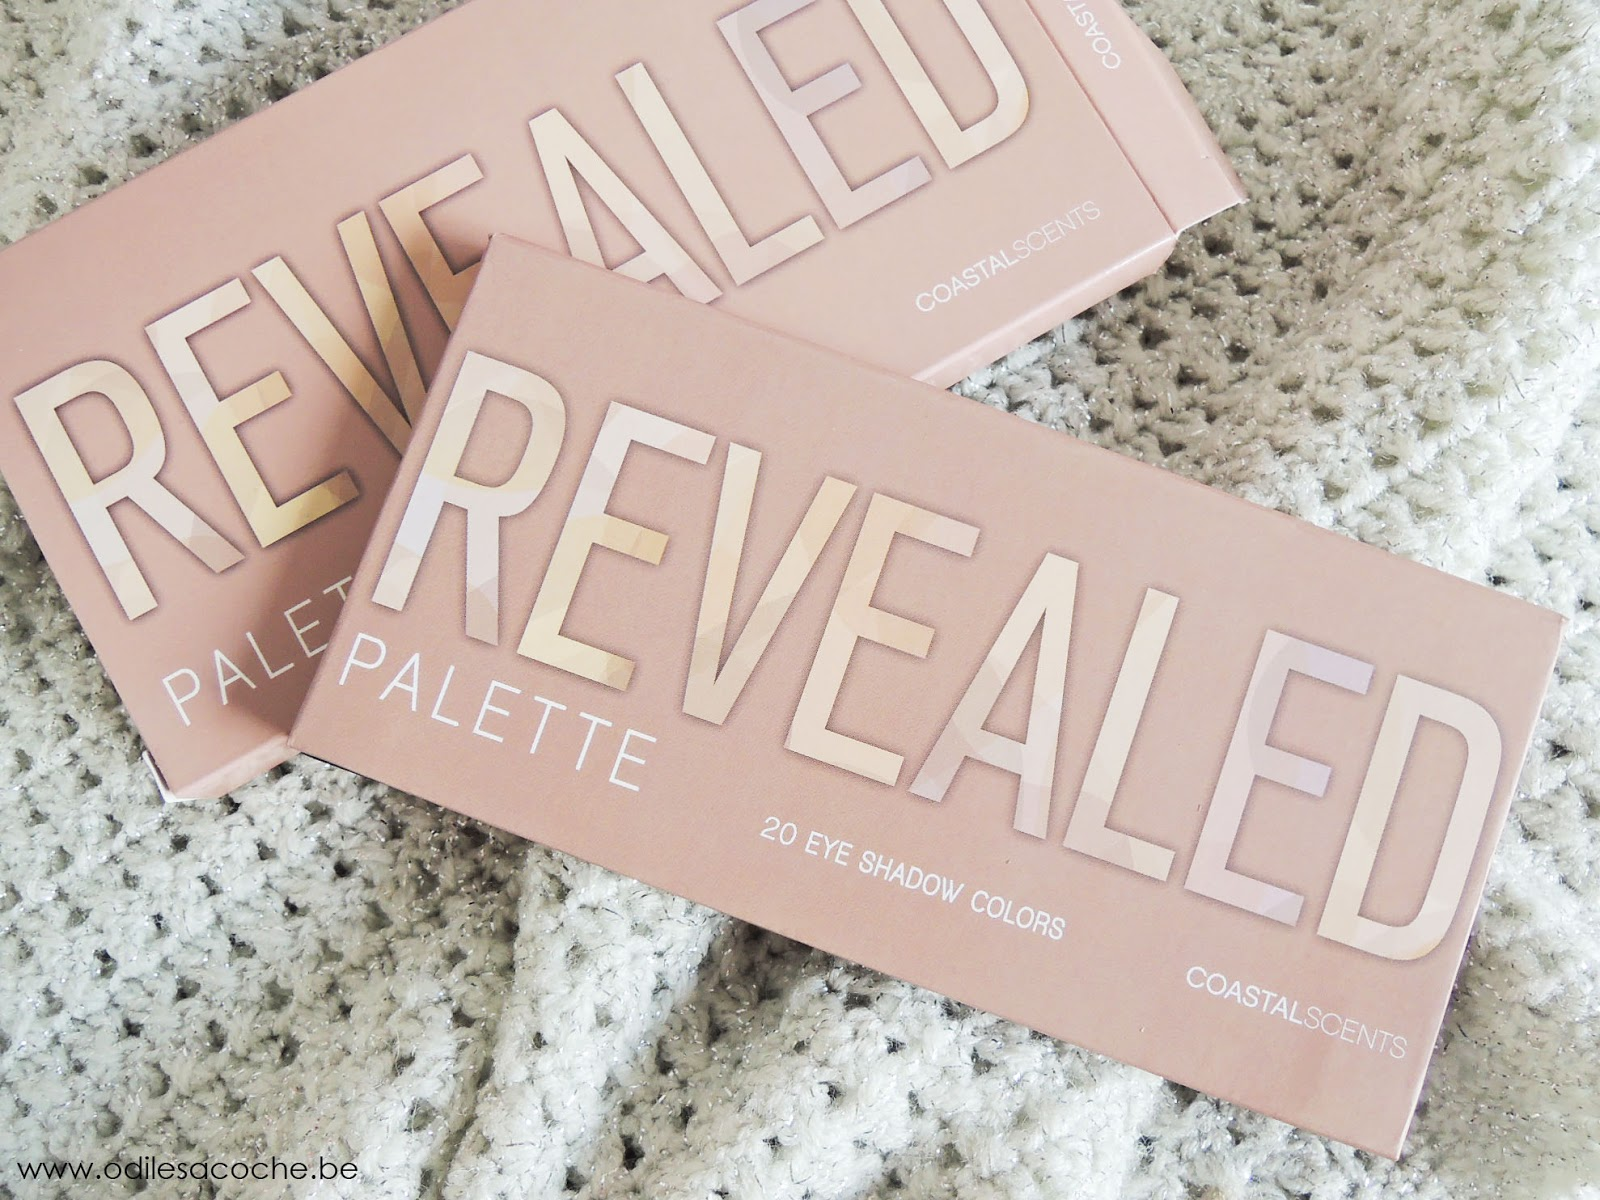 Packaging de Revealed palette